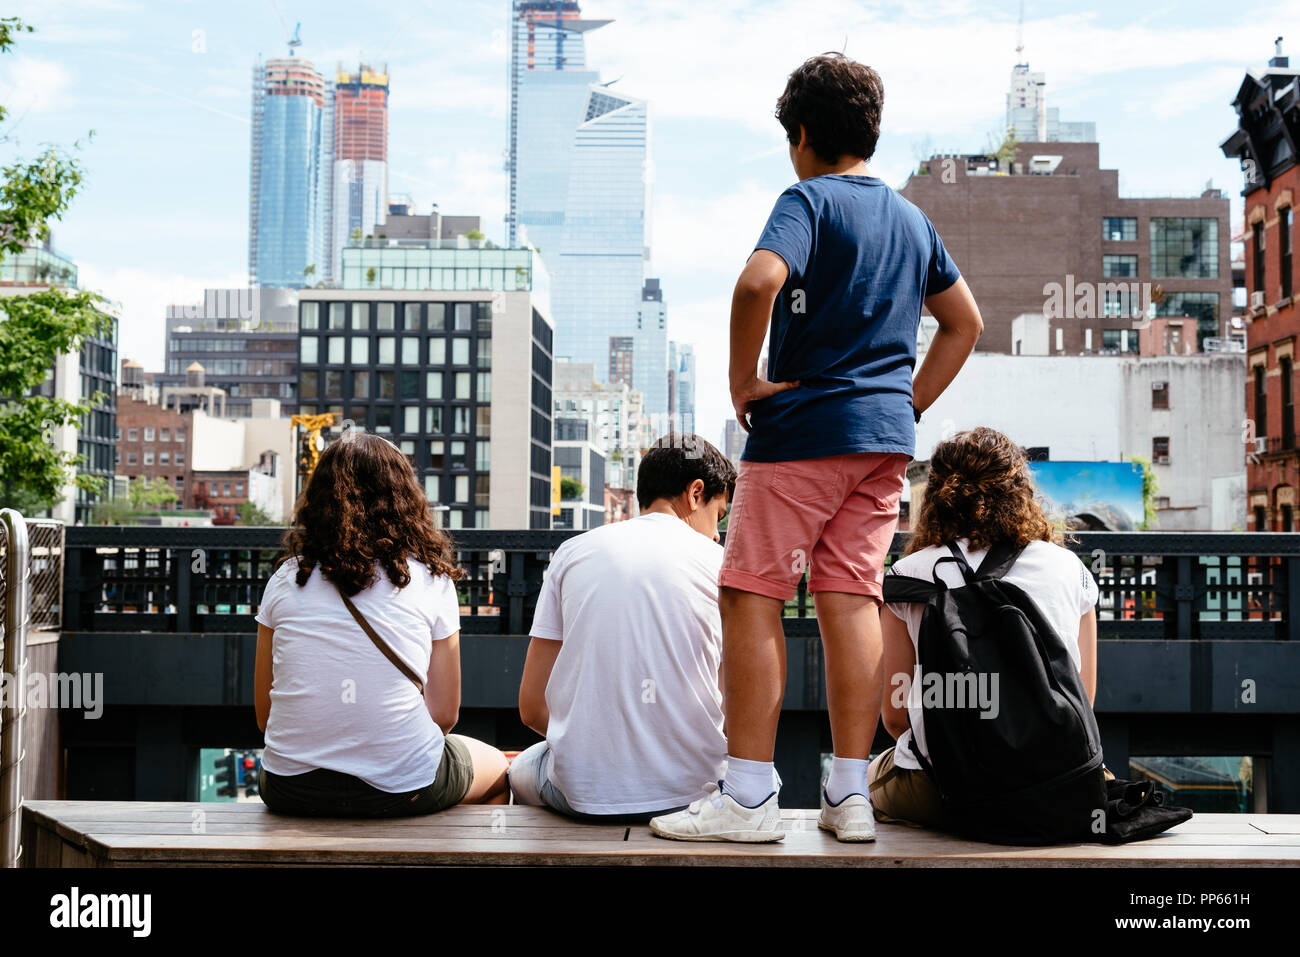 Four young people sitting in Observatory point in High Line against skyline of New York City - Stock Image